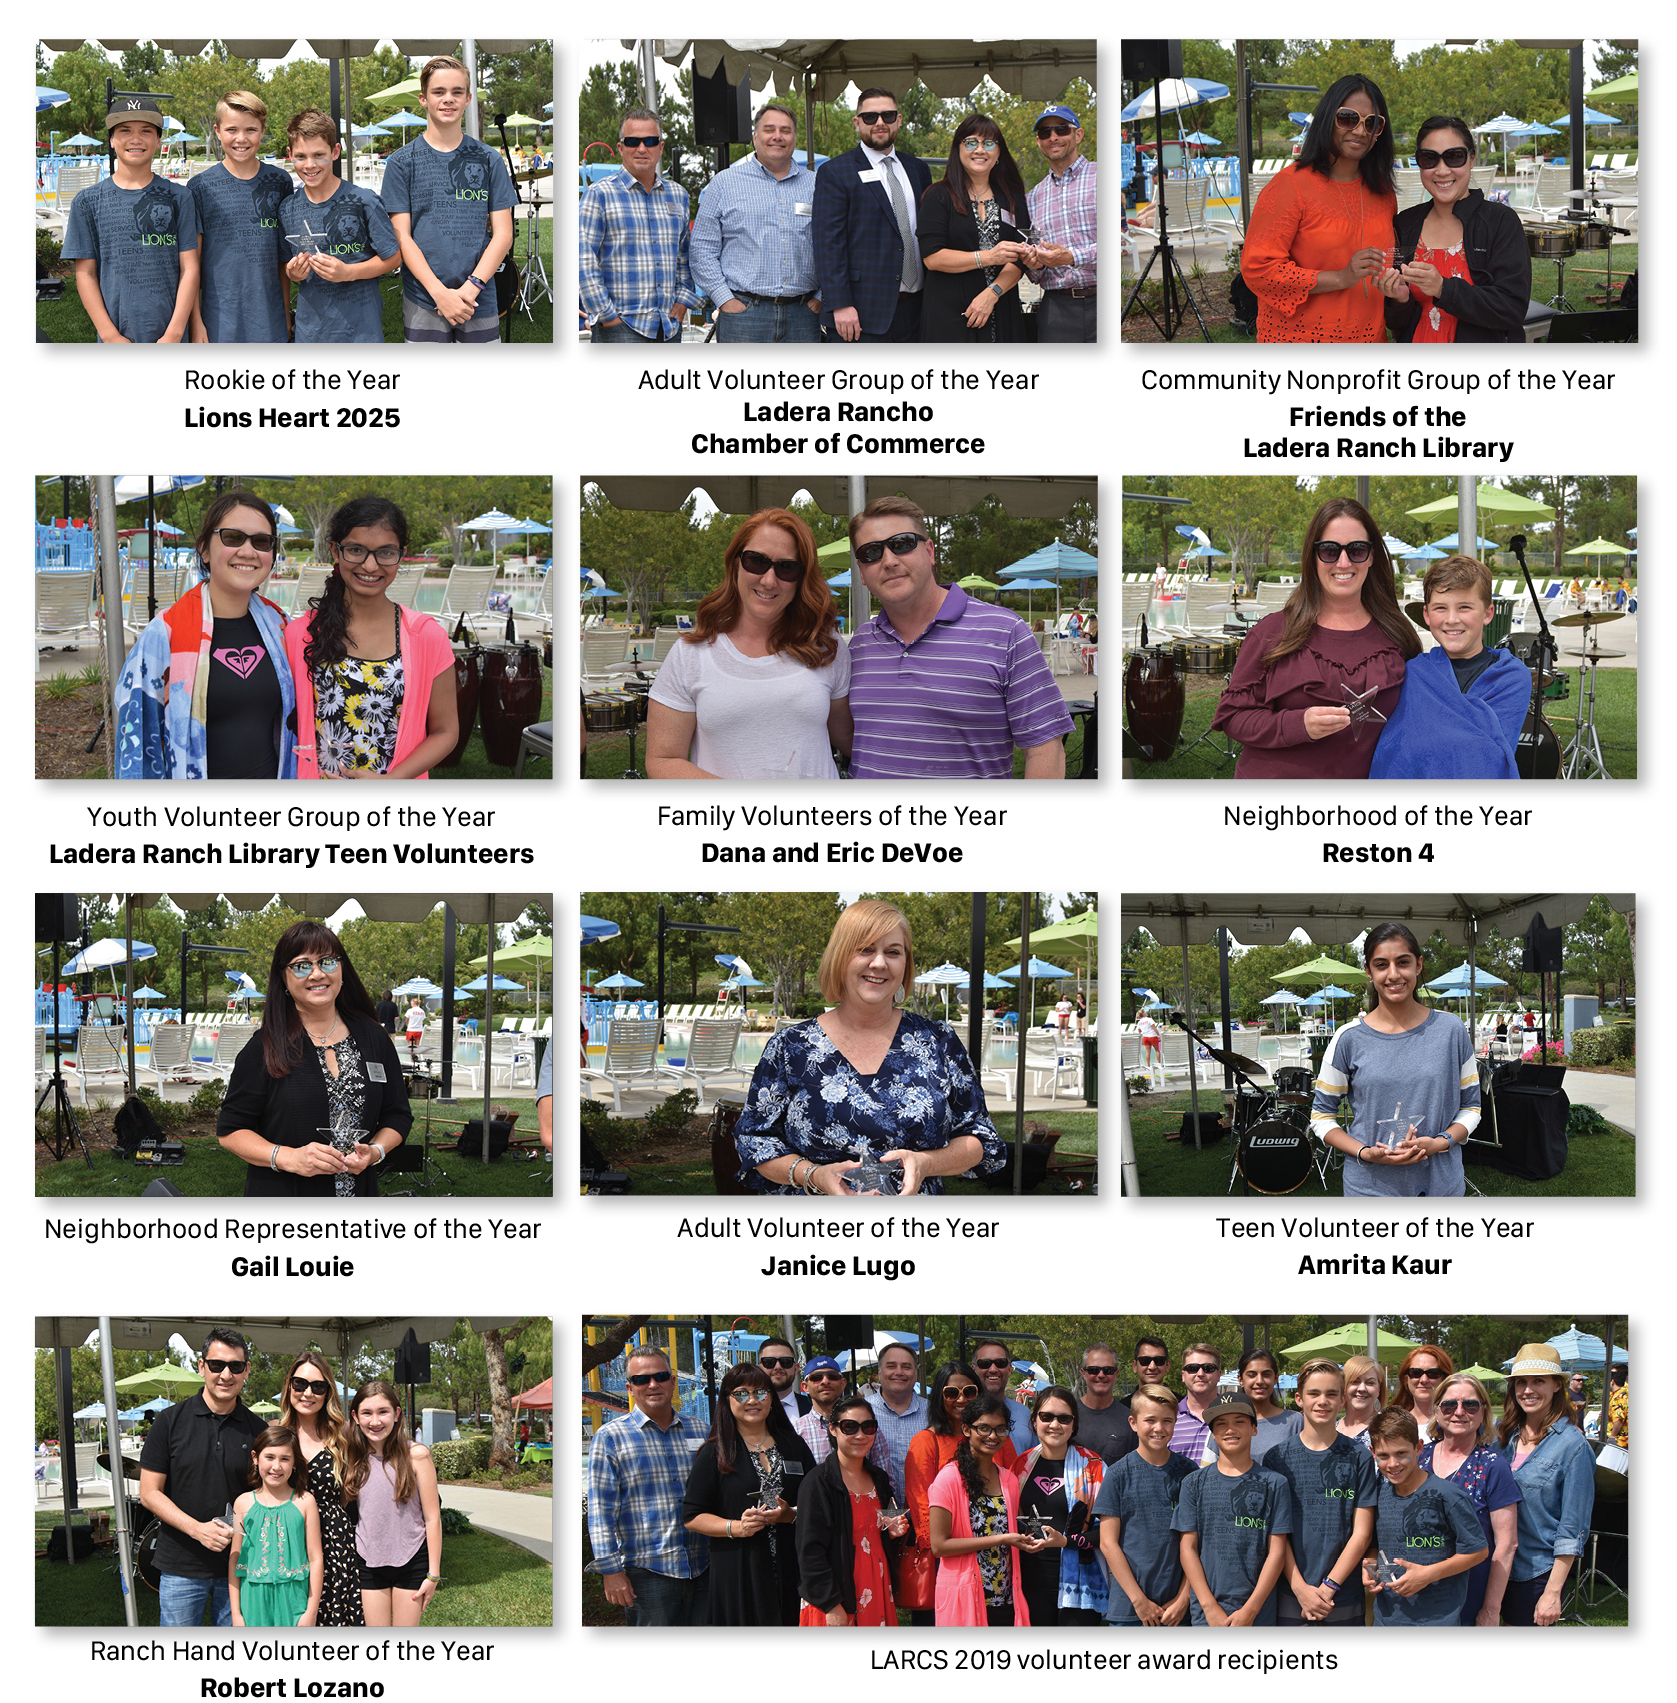 Volunteer%20Recognition%20Image